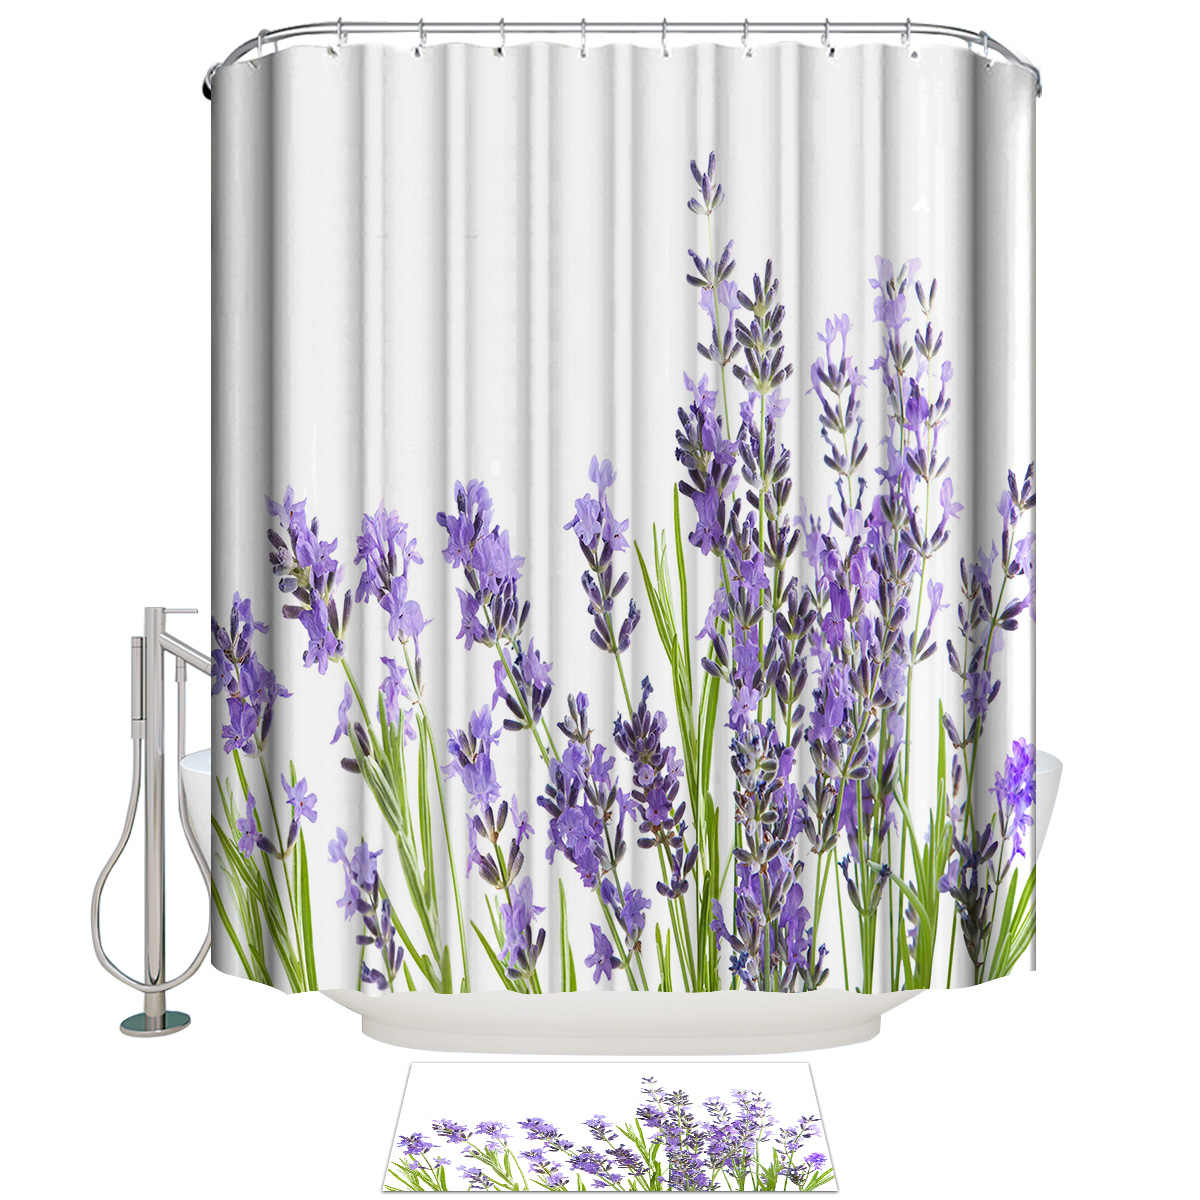 Purple Lavender Bathroom Mat With Shower Curtain Bathroom Accessory Sets 2 Piece Bathroom Set Shower Curtain Sets Outdoor